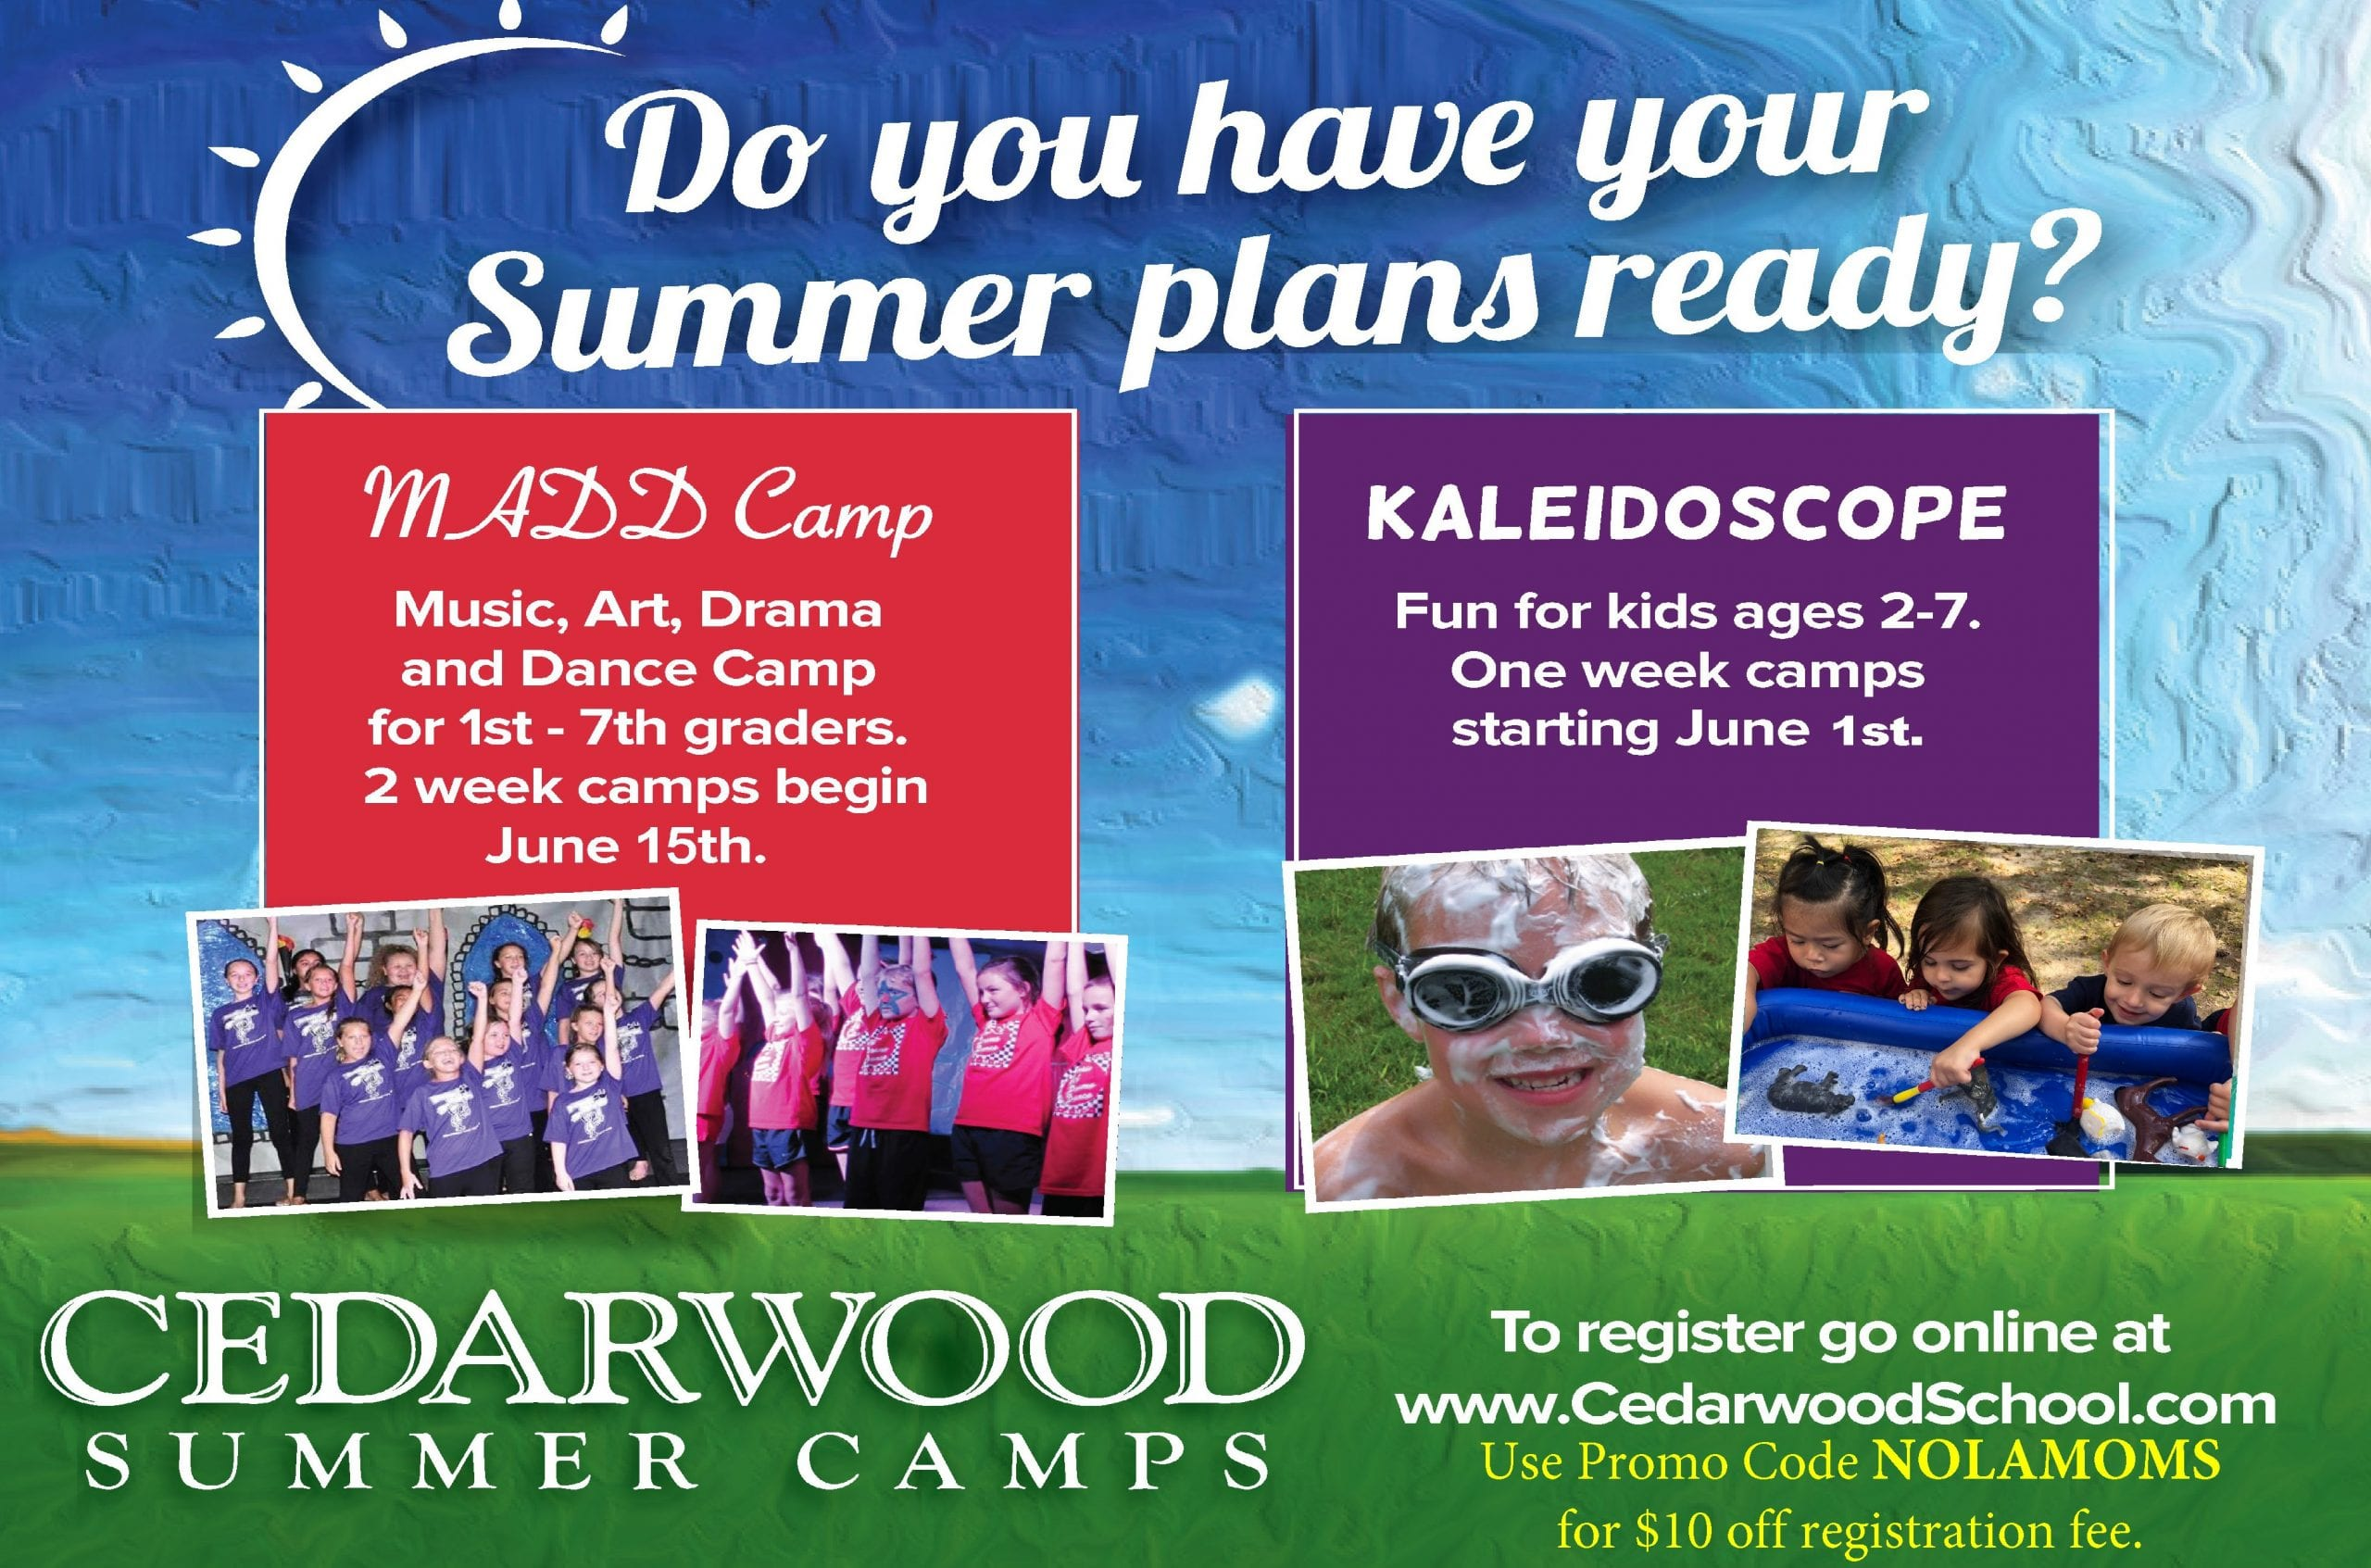 2020 Summer Camps In And Around New Orleans